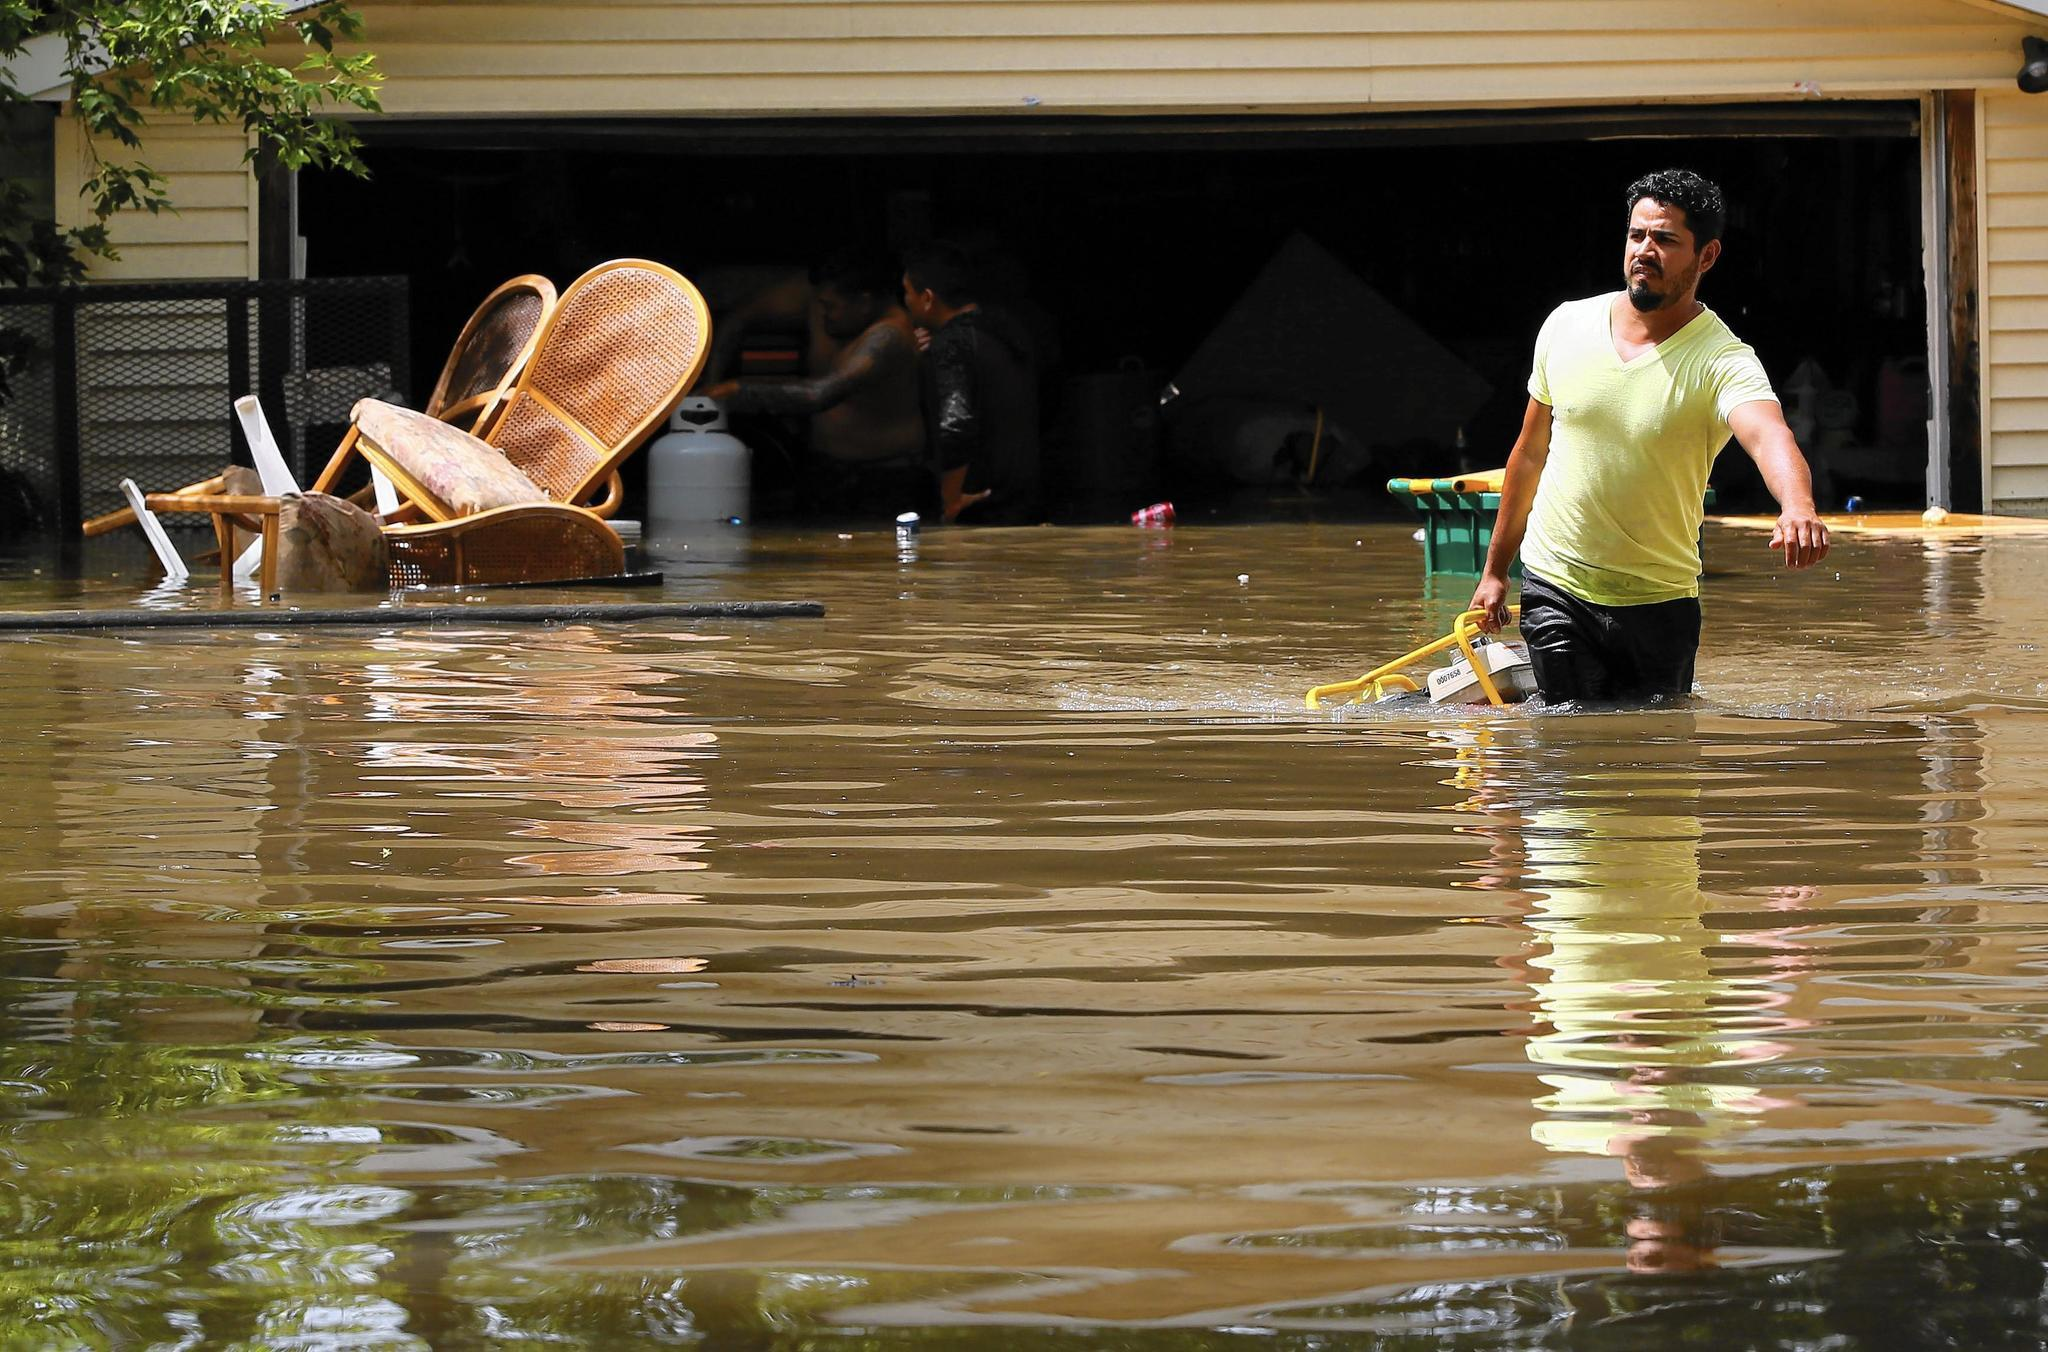 If flood insurance program lapses itll be total chaos